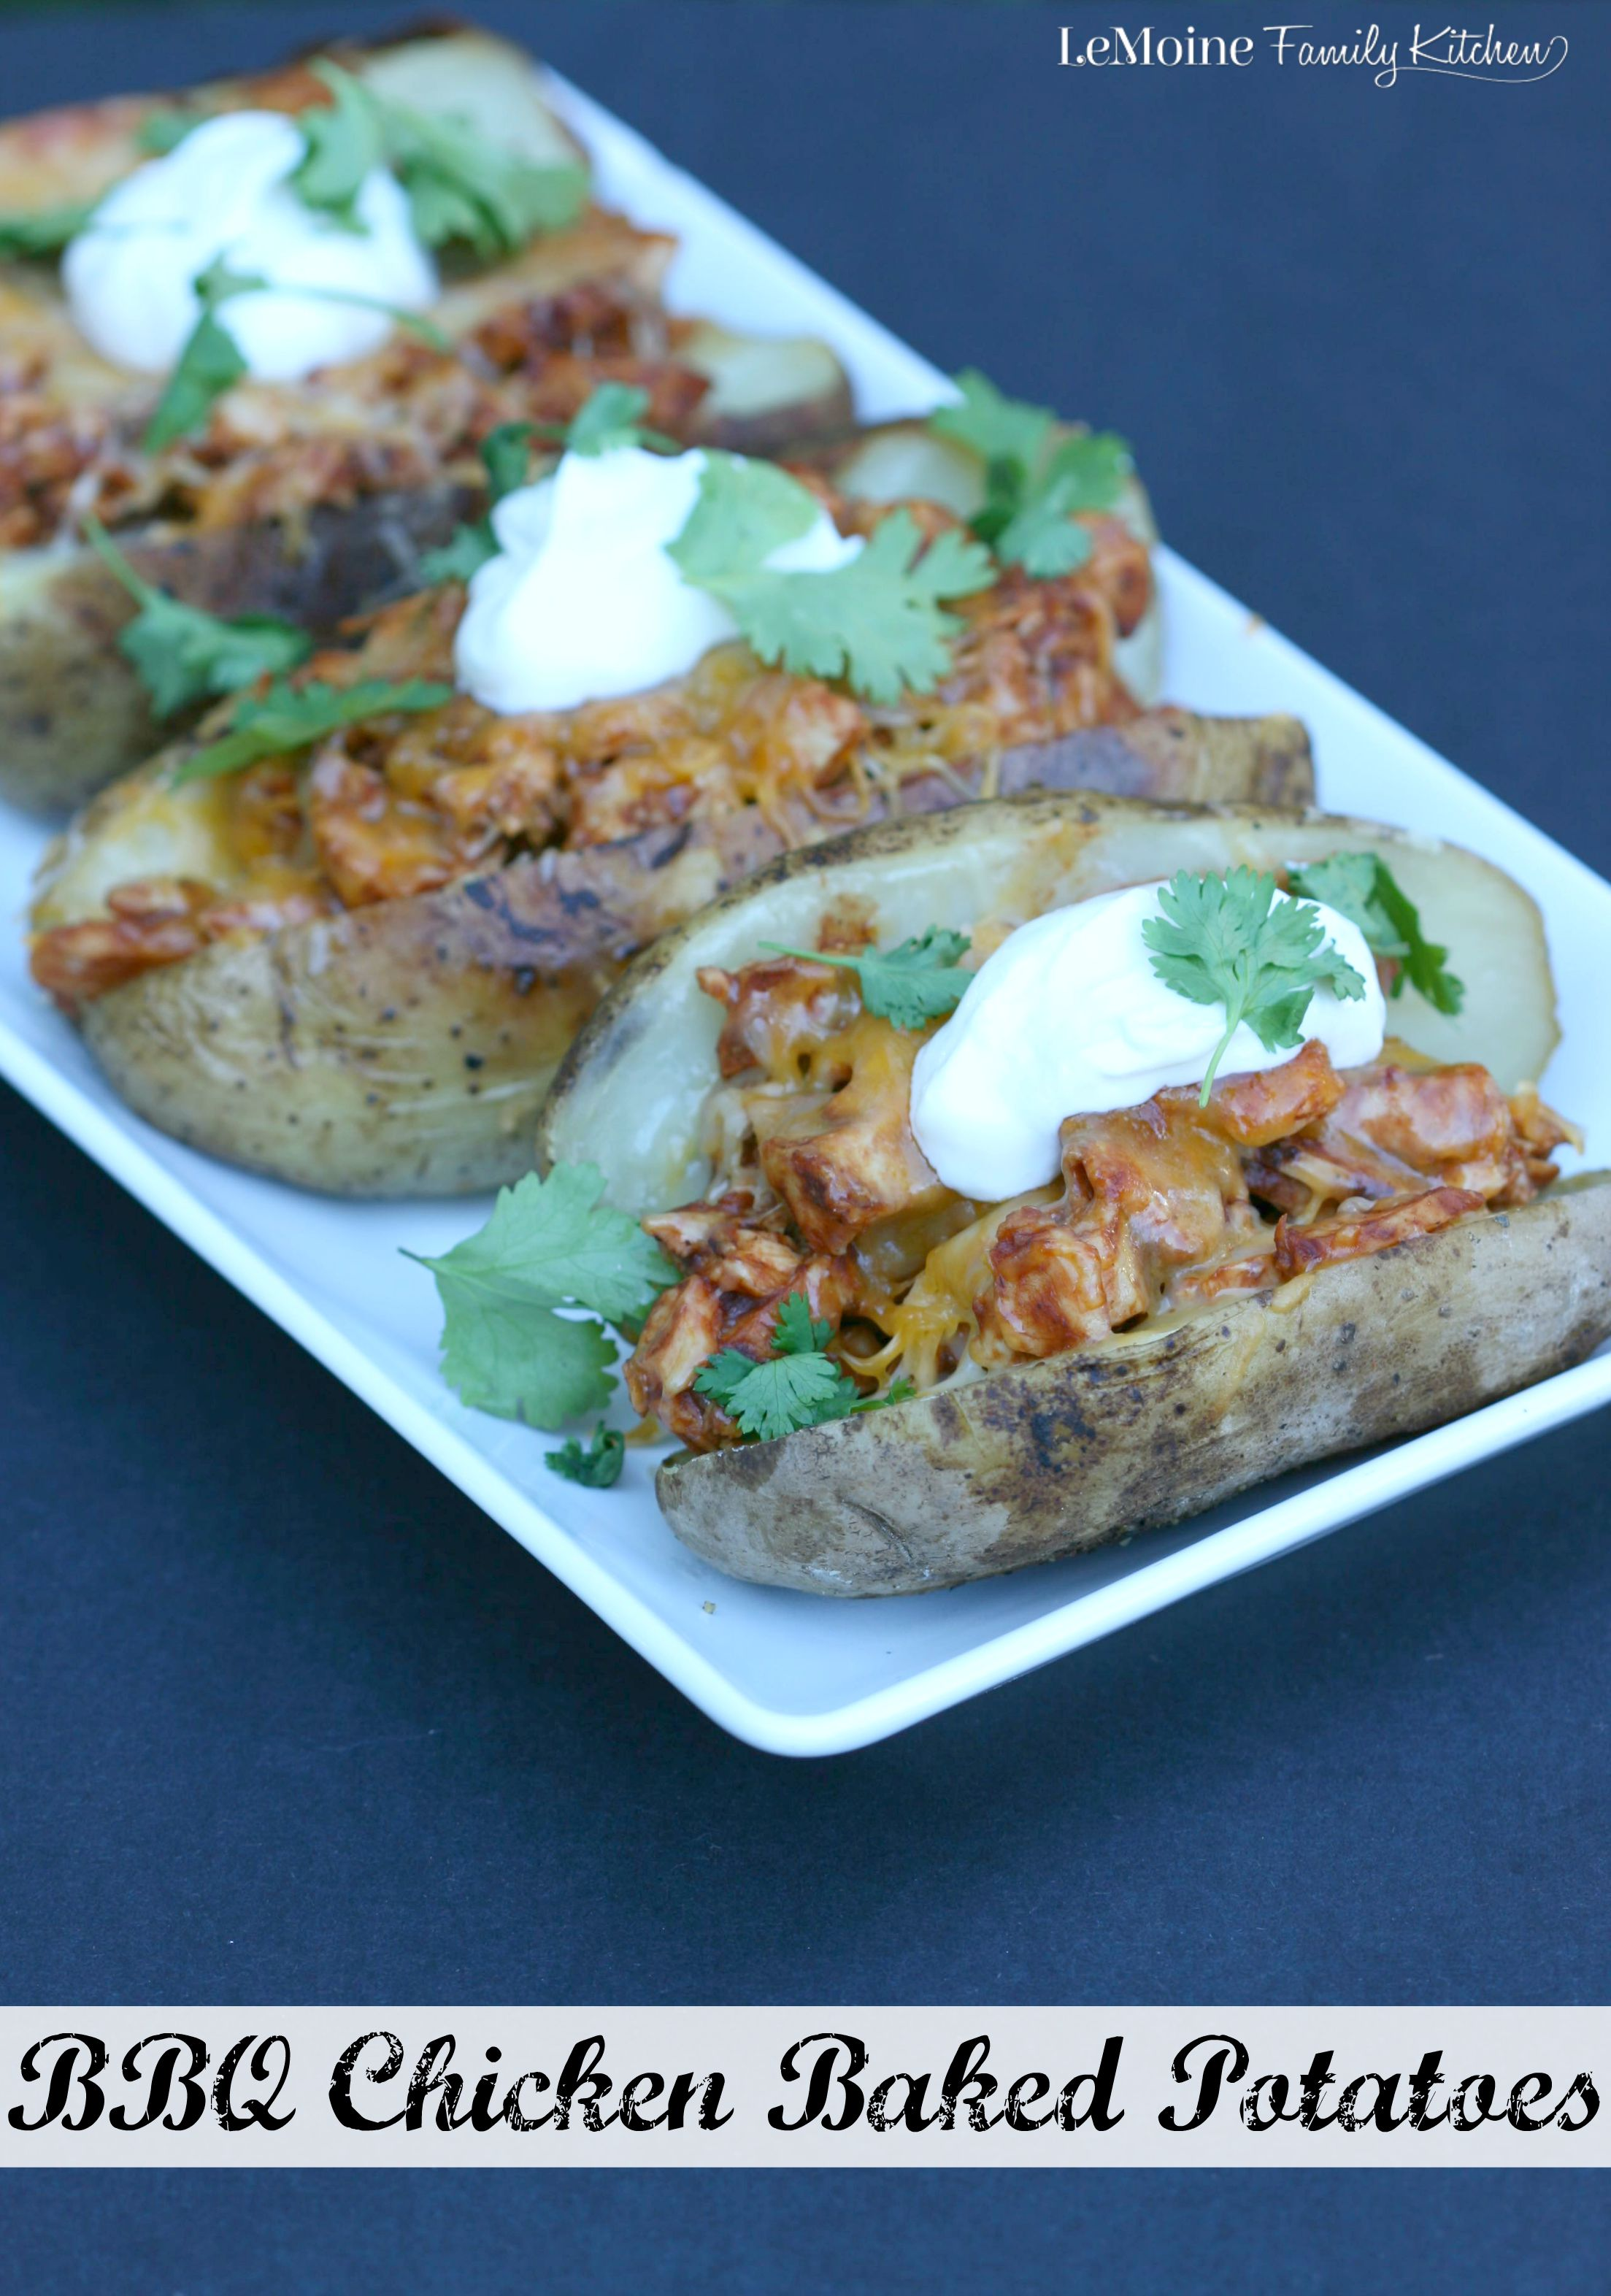 ... baked potato, topped with cheddar, sour cream and fresh cilantro